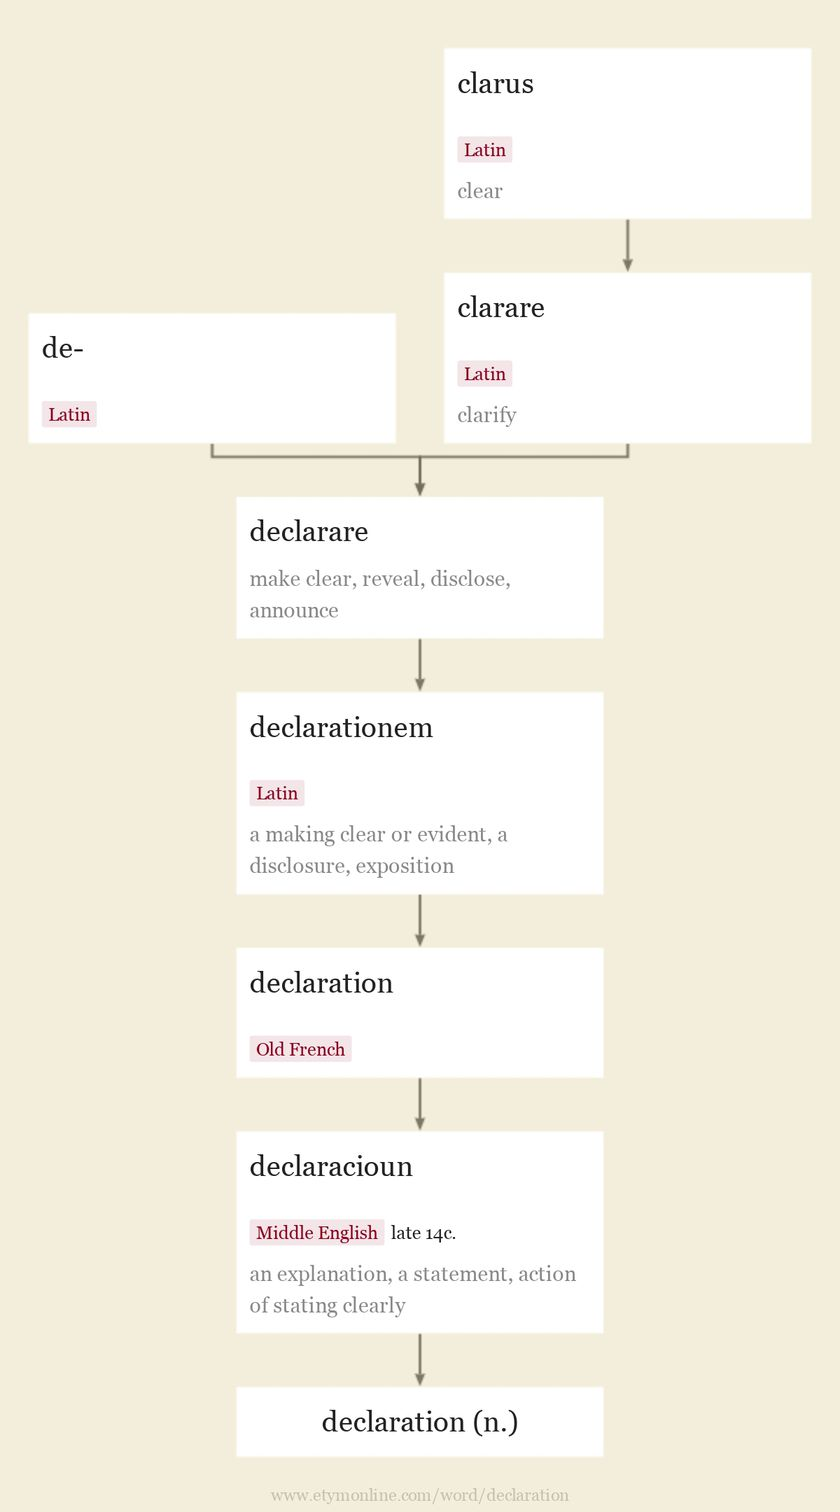 Origin and meaning of declaration